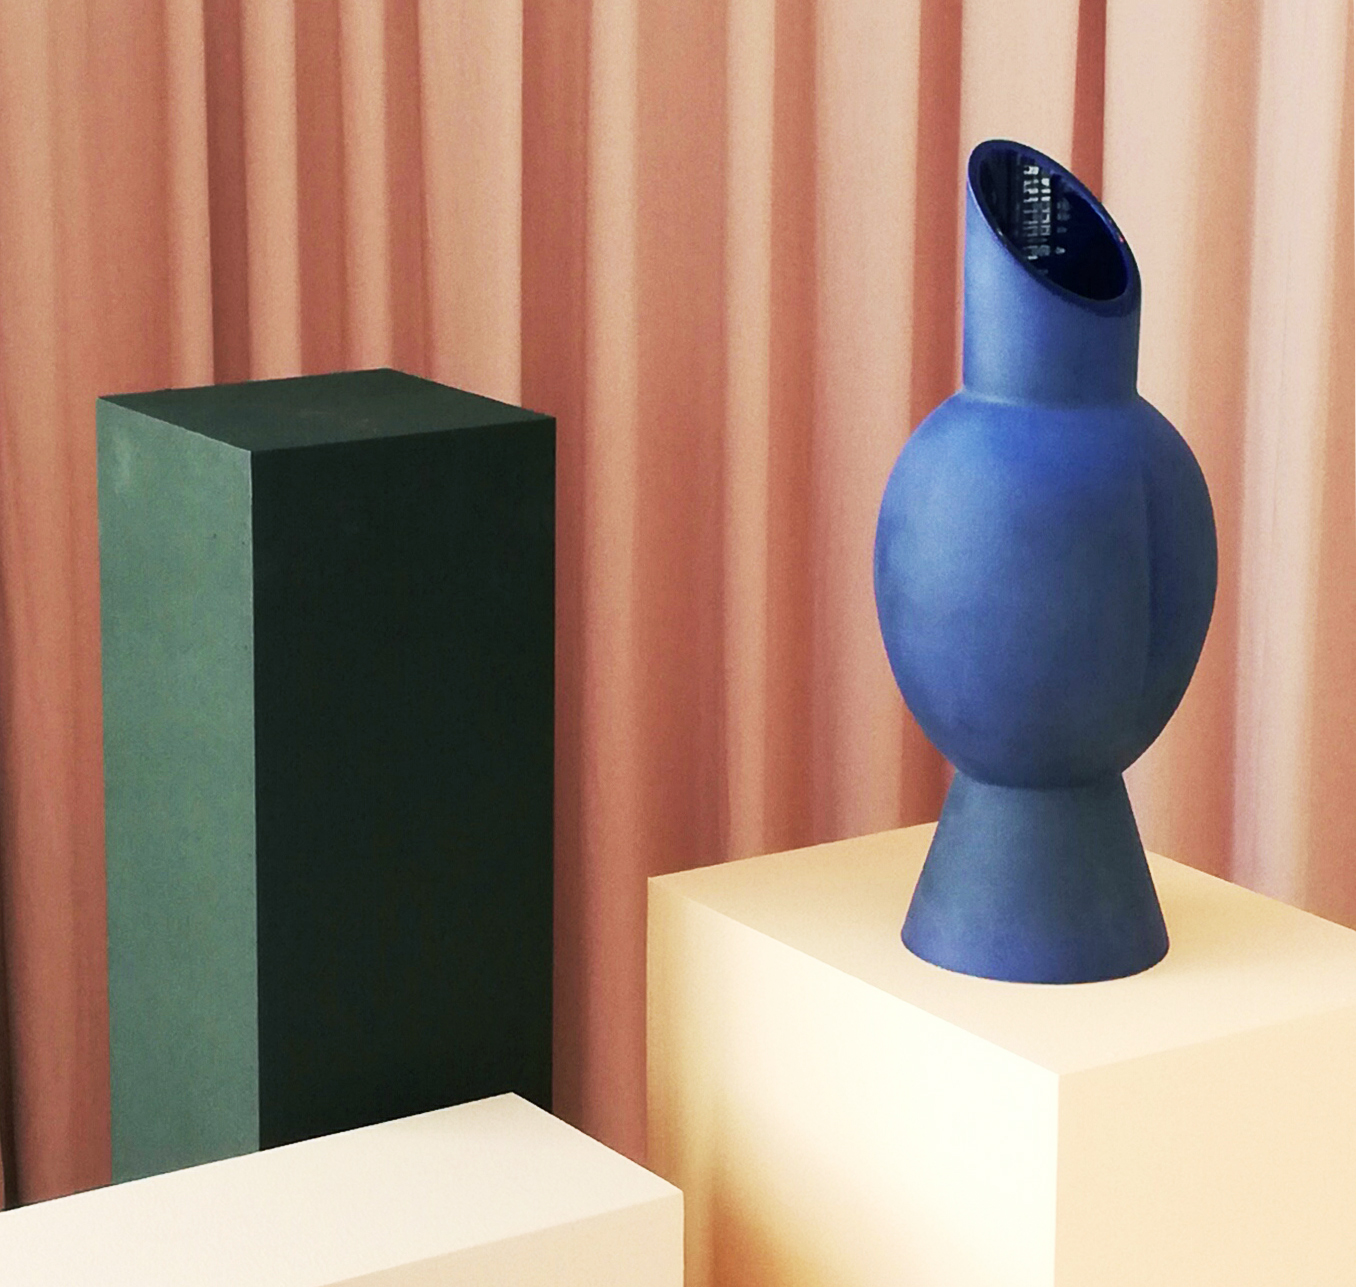 These Ceramics in a Former French Salon Are the Exact Amount of '80s Nostalgia We Need Right Now